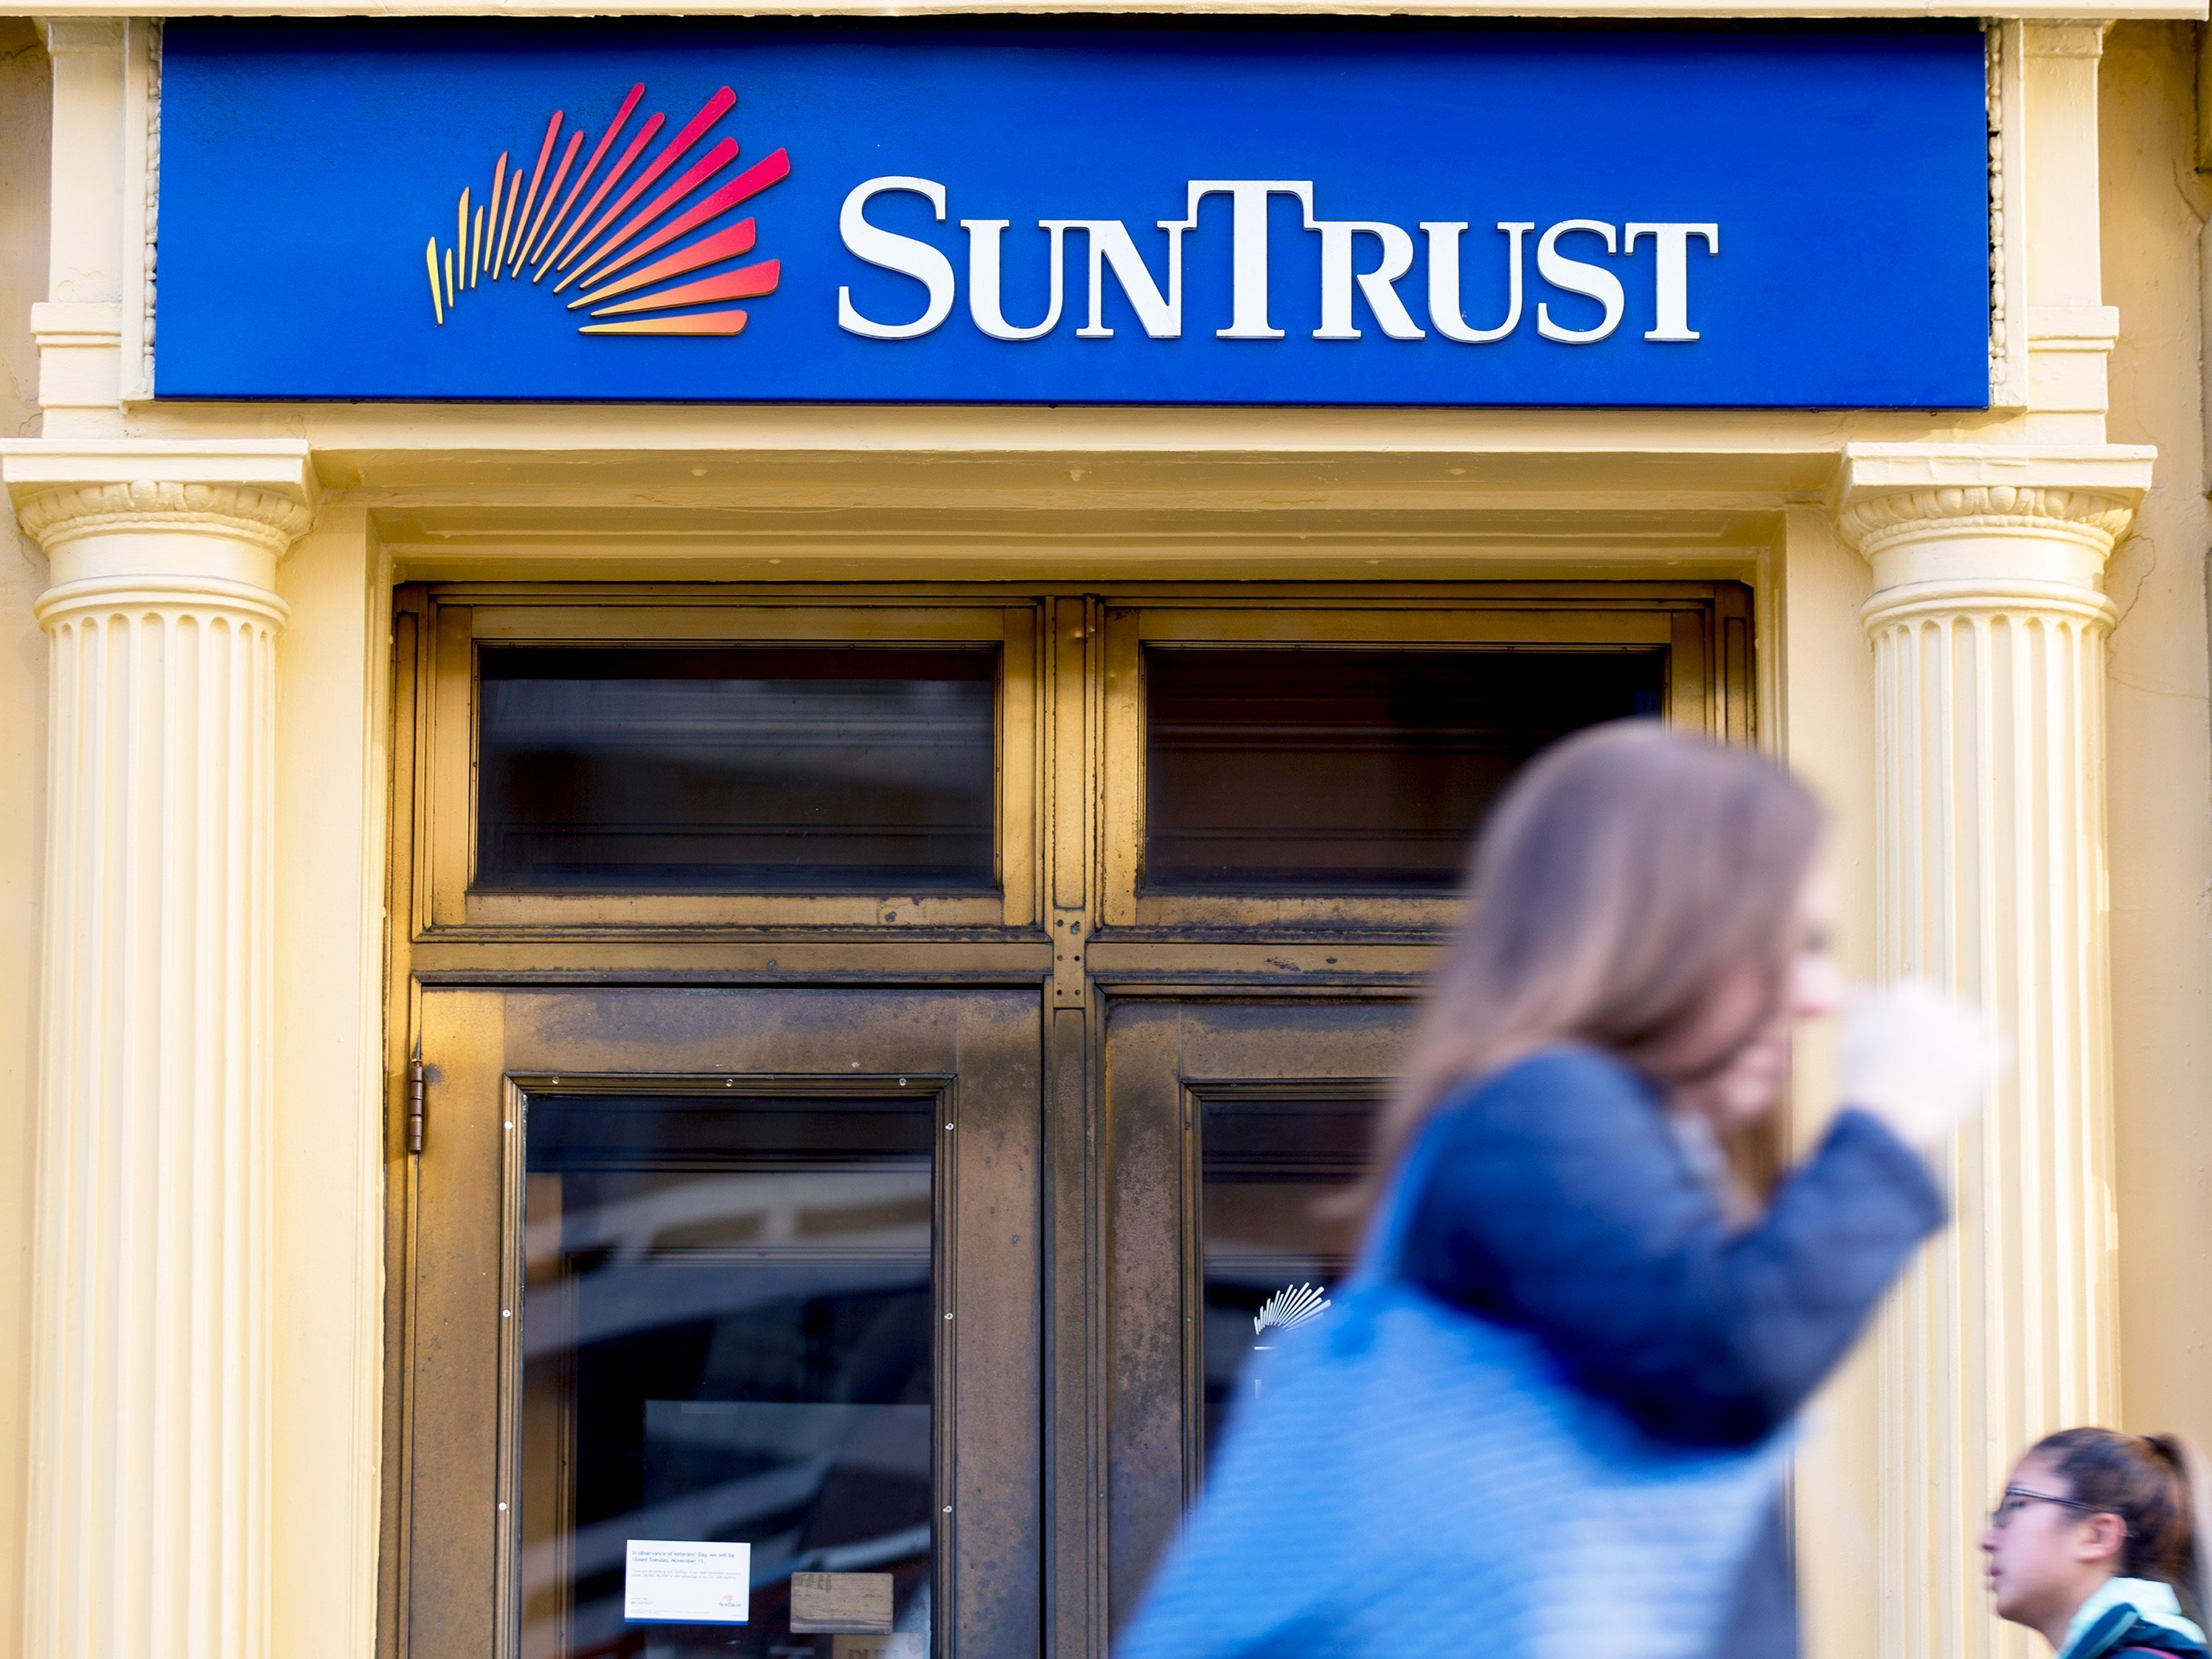 SunTrust discloses possible data theft